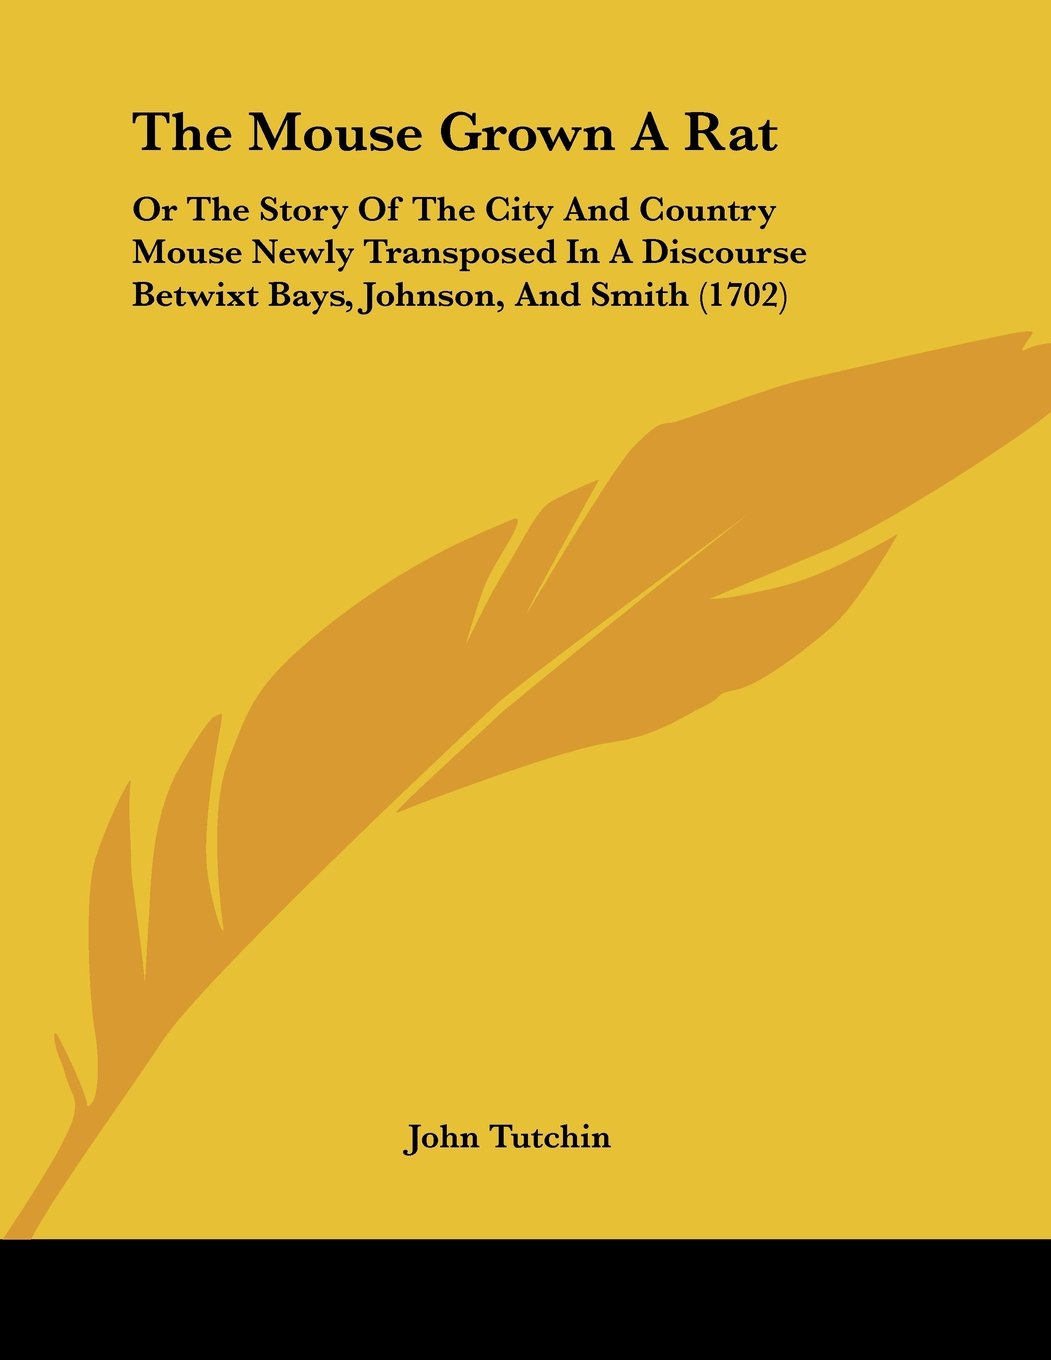 Download The Mouse Grown A Rat: Or The Story Of The City And Country Mouse Newly Transposed In A Discourse Betwixt Bays, Johnson, And Smith (1702) pdf epub